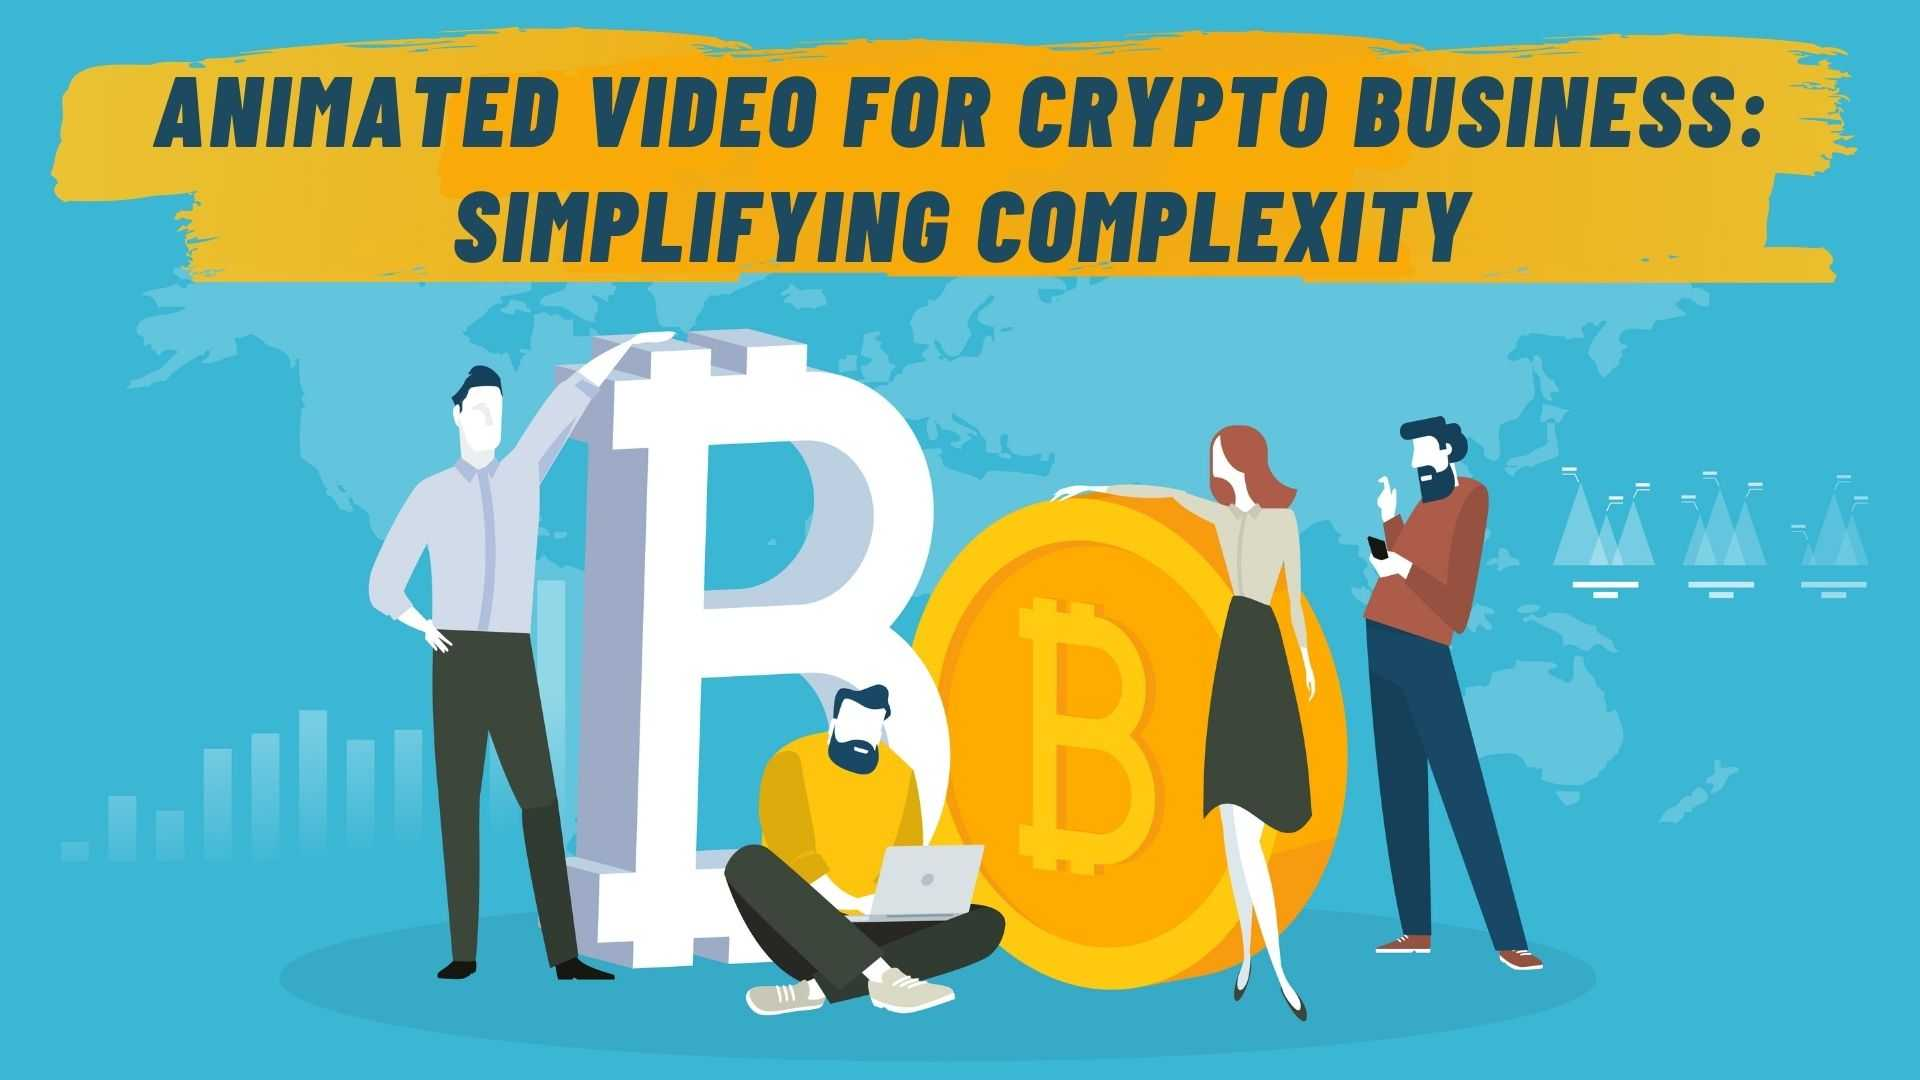 Animated video for crypto business